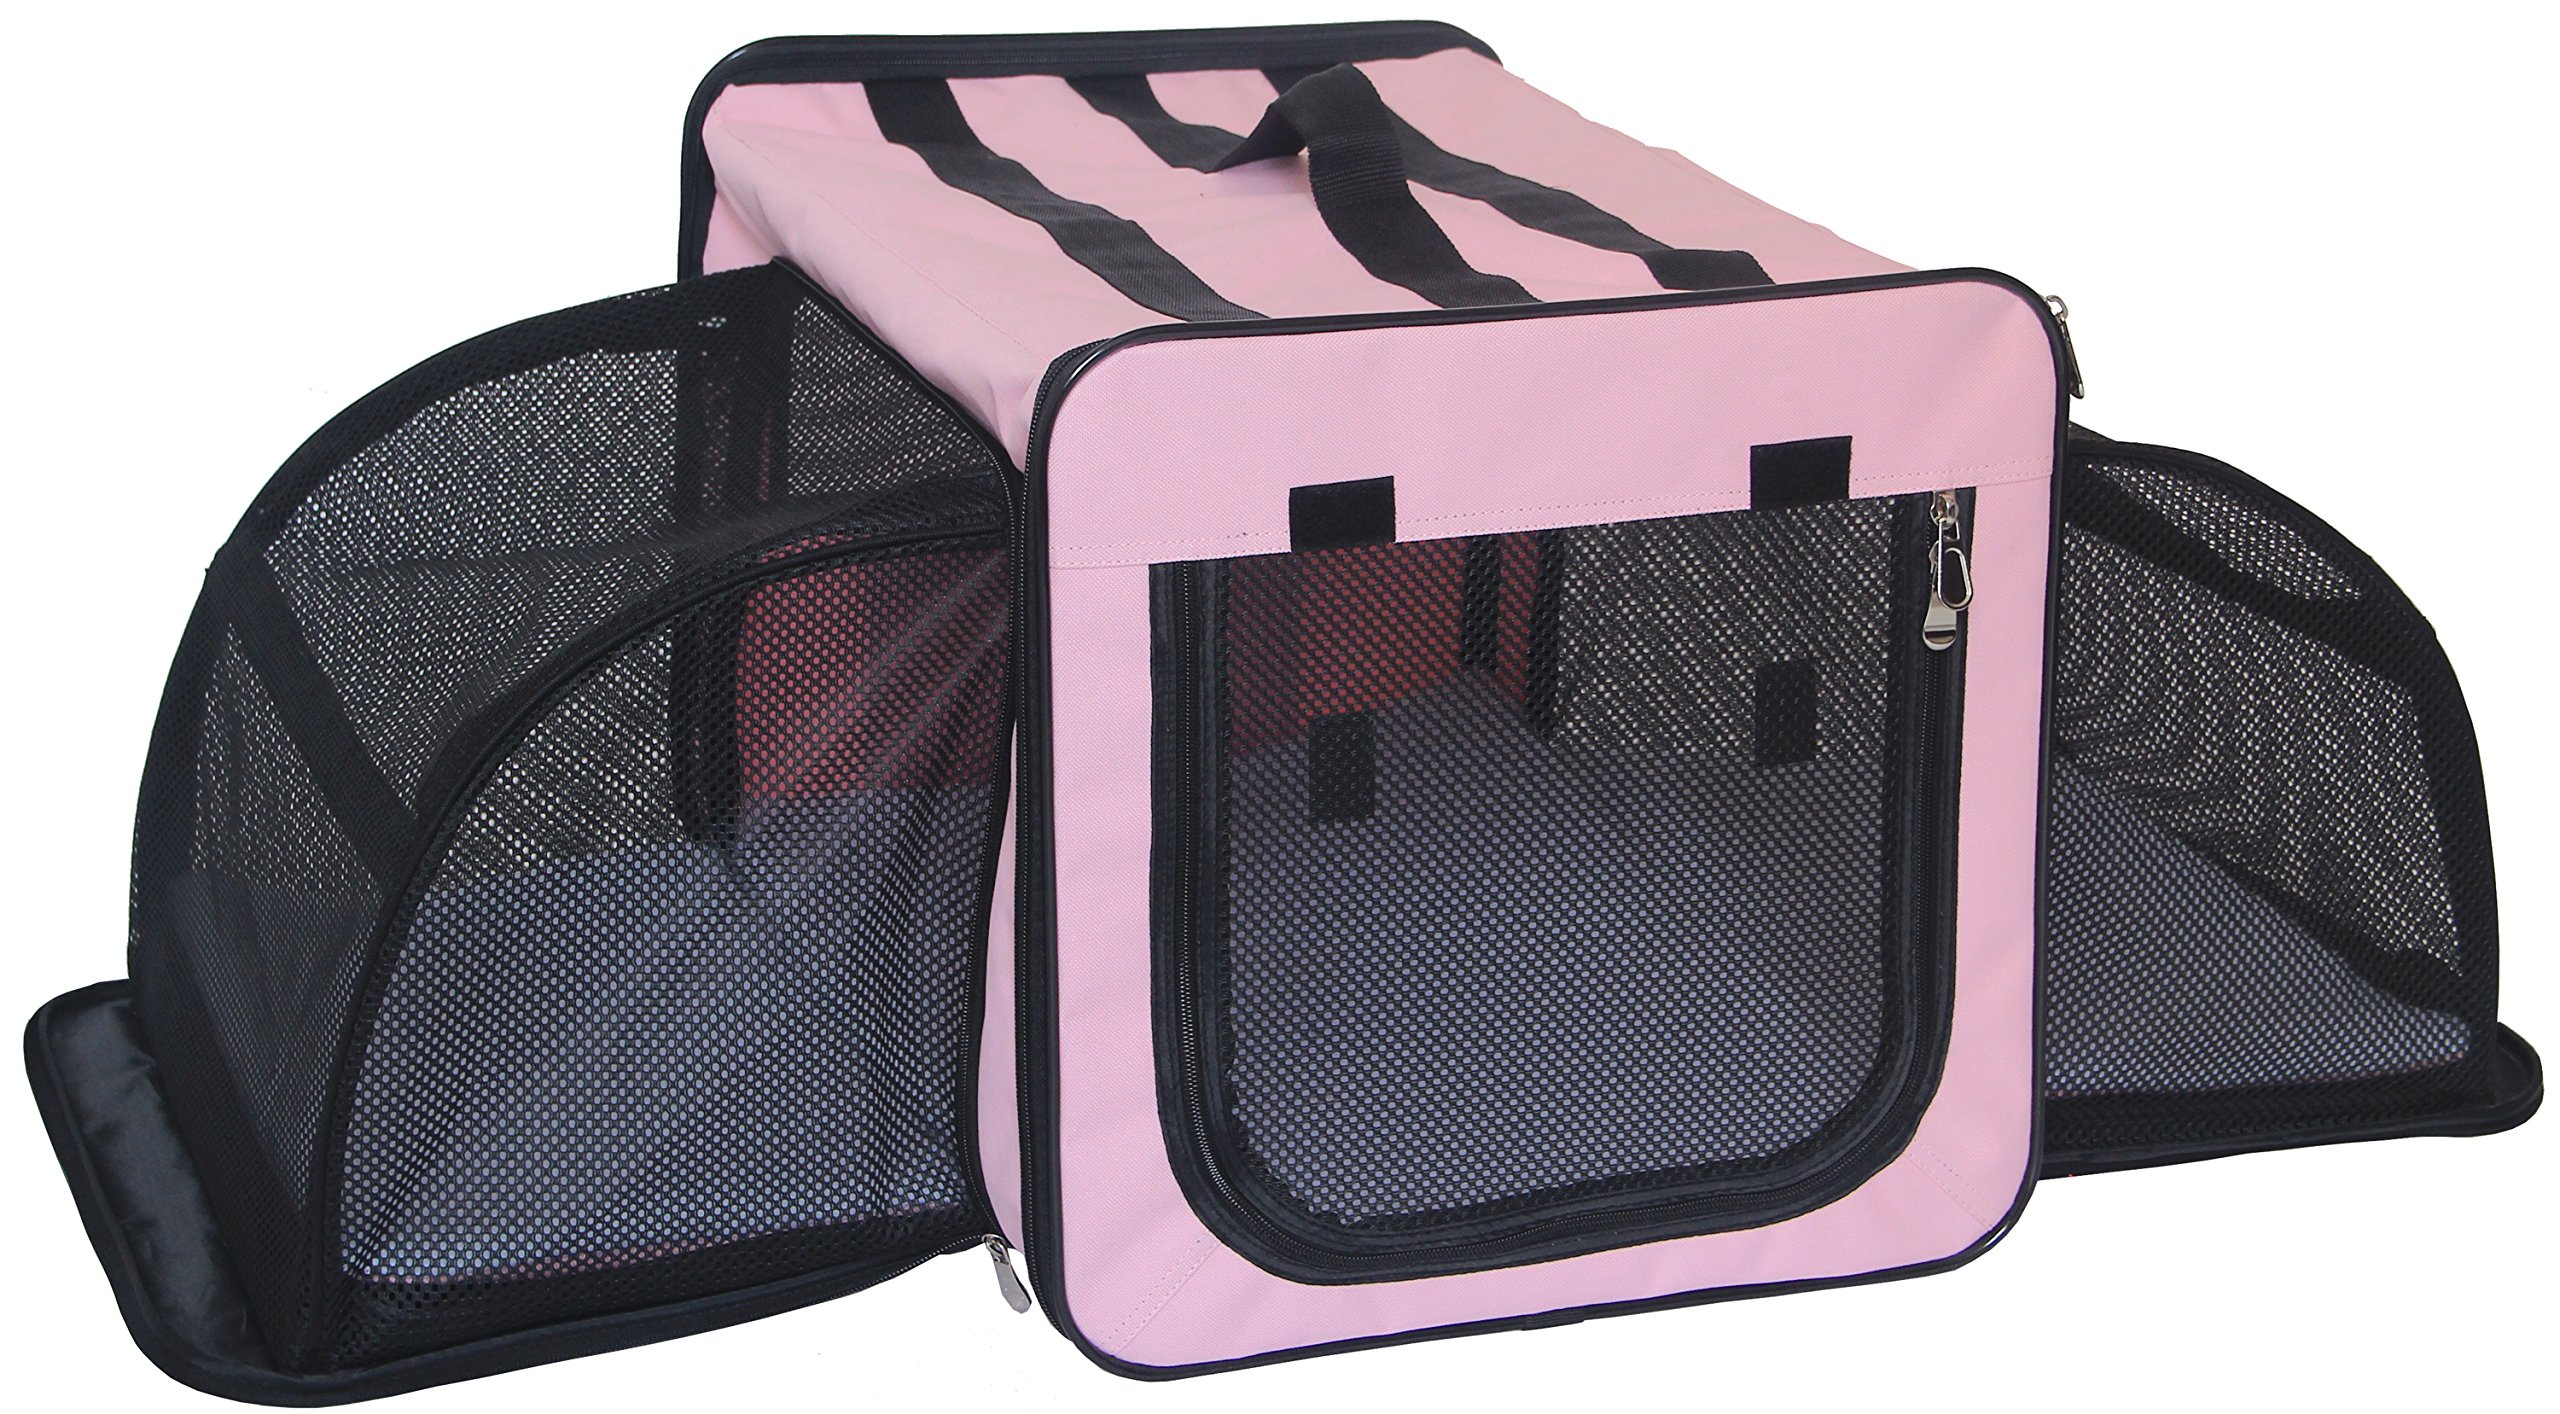 Pet Life 'Capacious' Dual-Sided Expandable Spacious Wire Folding Collapsible Lightweight Pet Dog Crate Carrier House, X-Large, Pink by Pet Life (Image #2)